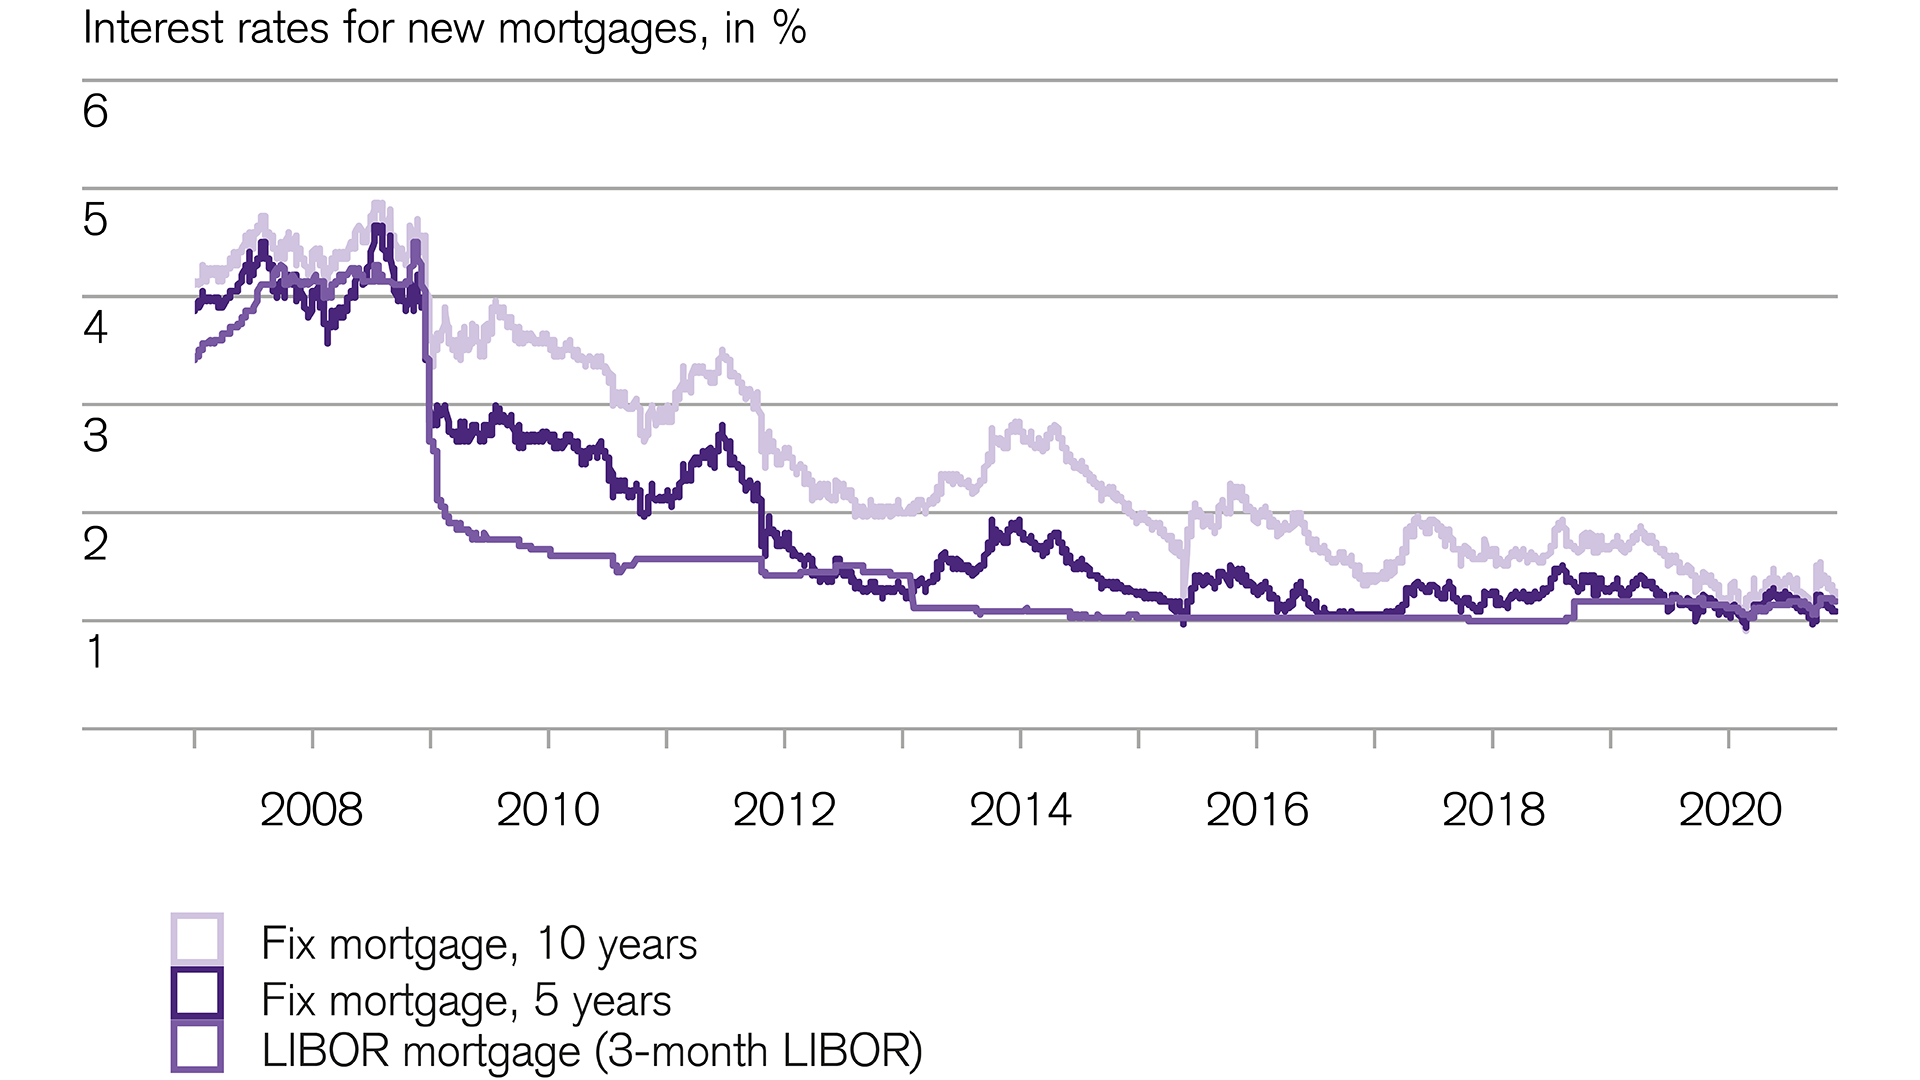 Investing: Mortgage interest rates remain very low